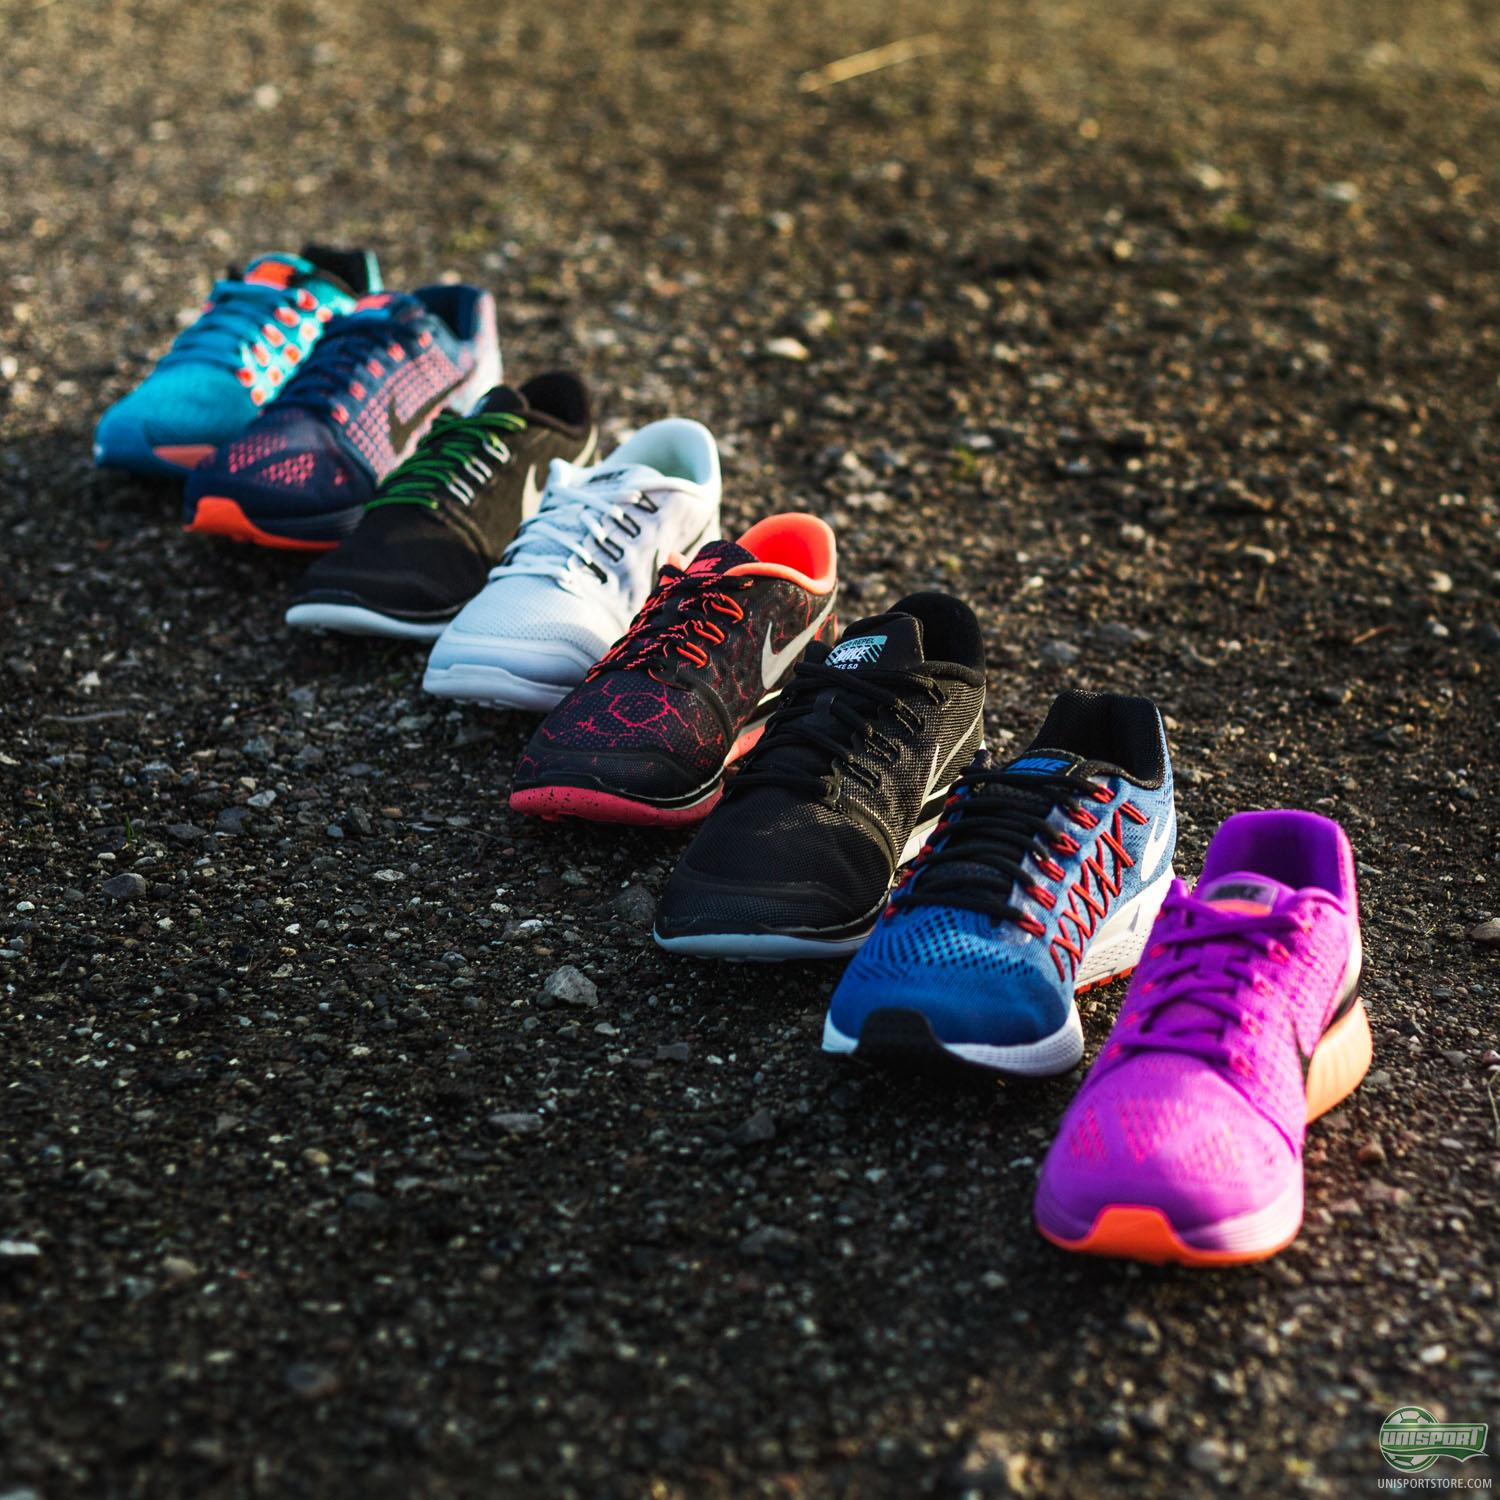 92968274d0d5 We boast a very impressive array of Nike running shoes